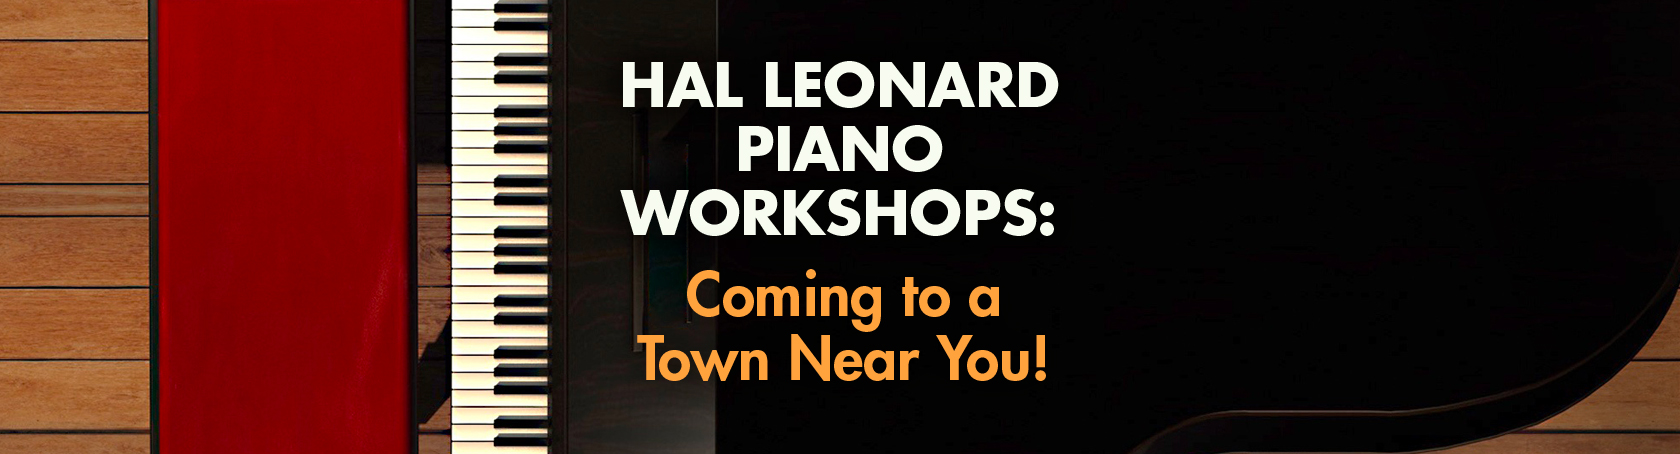 Piano Workshops - Hal Leonard Piano Workshops Coming to a Town Near You